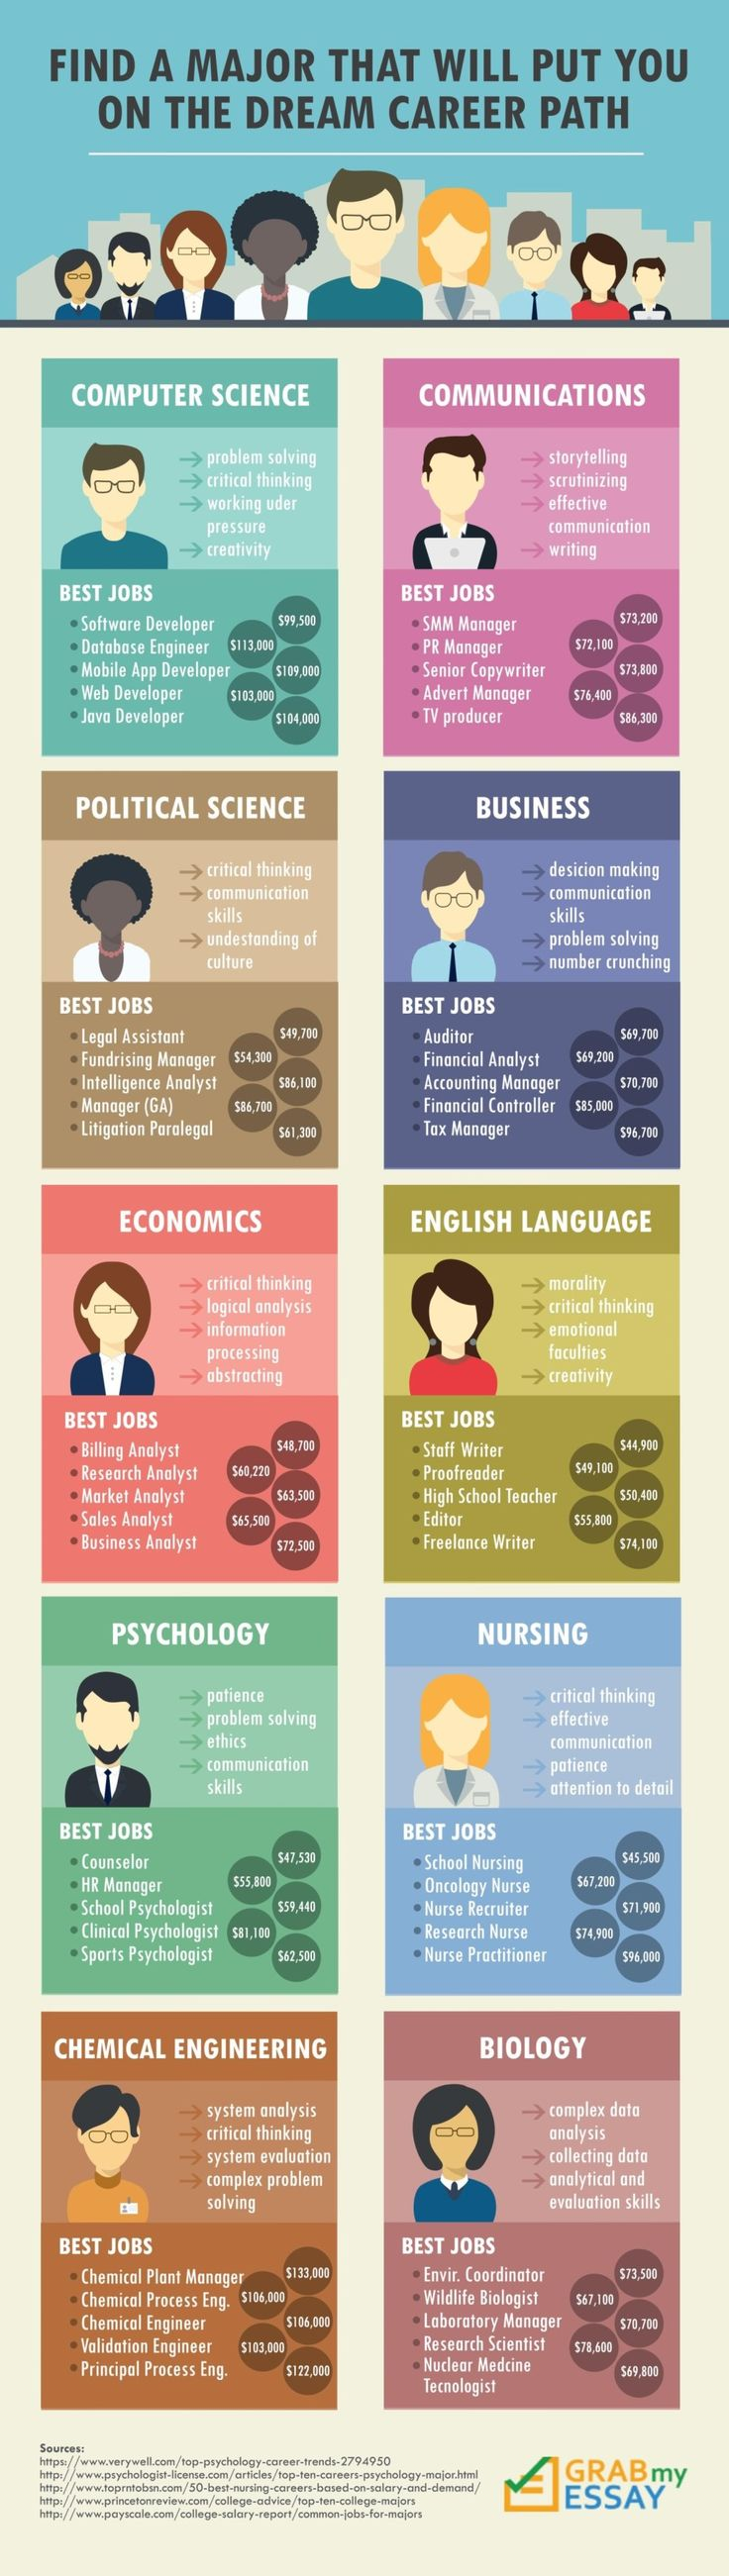 3633 best career infographics images on pinterest info graphics 3633 best career infographics images on pinterest info graphics career advice and interview malvernweather Choice Image